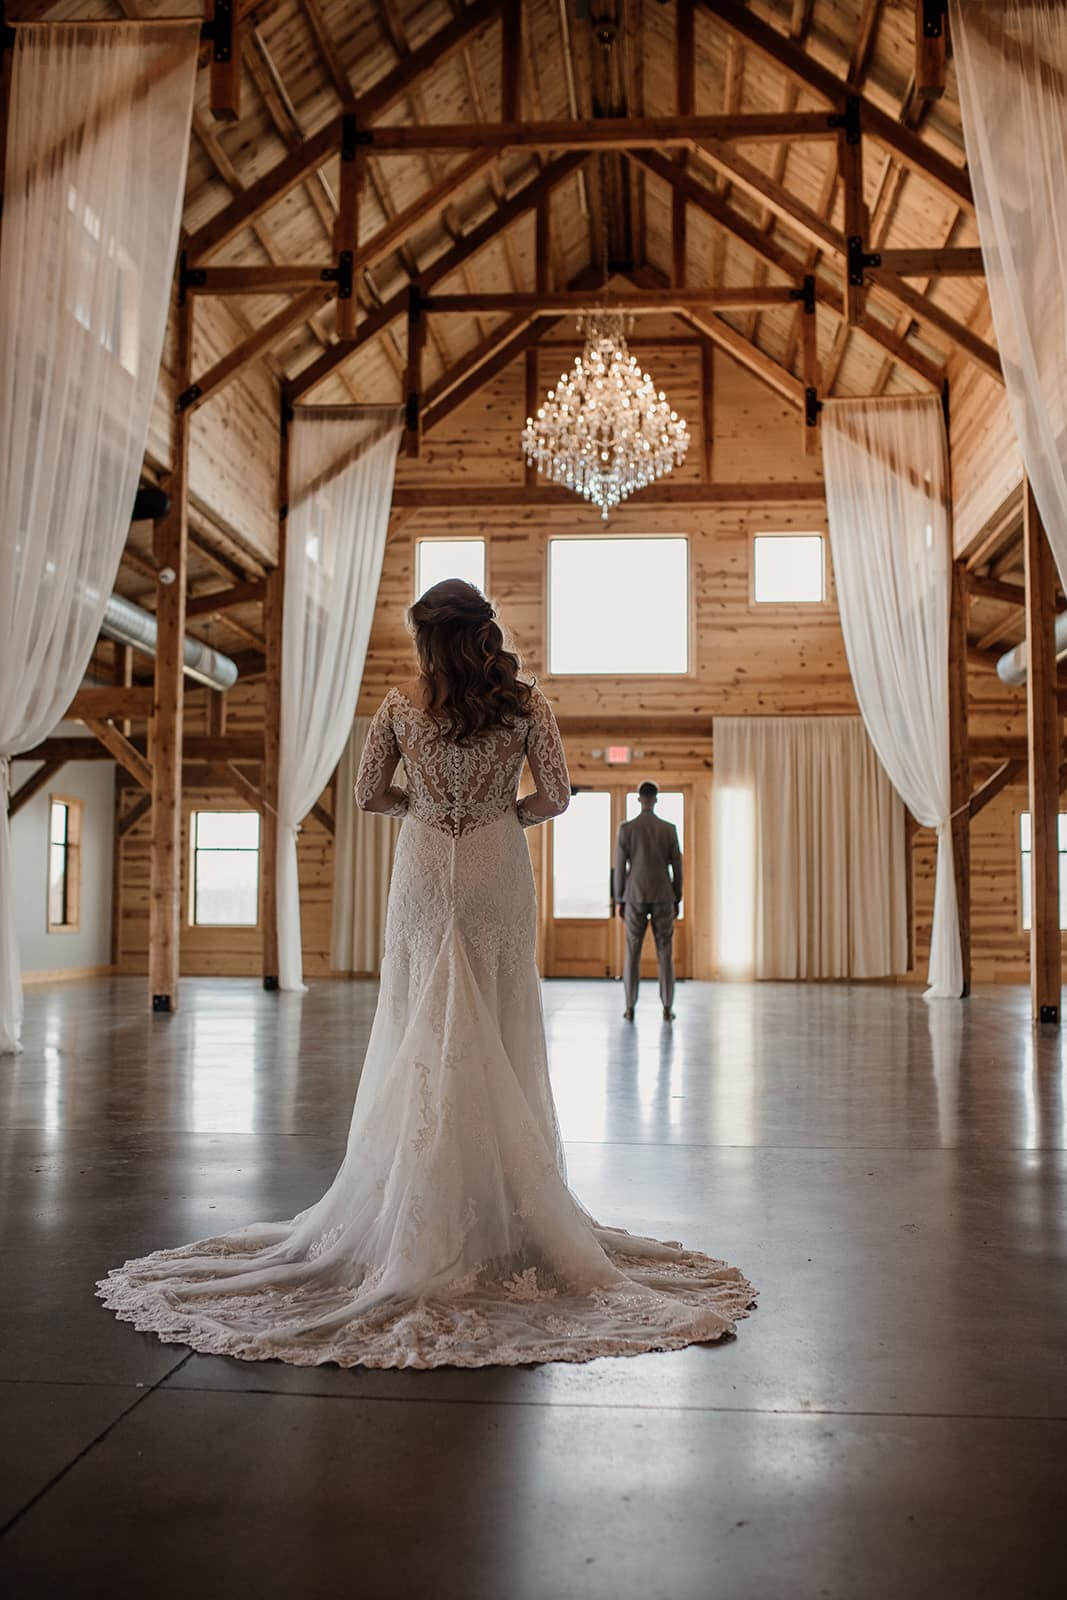 a groom waits for his bride in a wooden barn